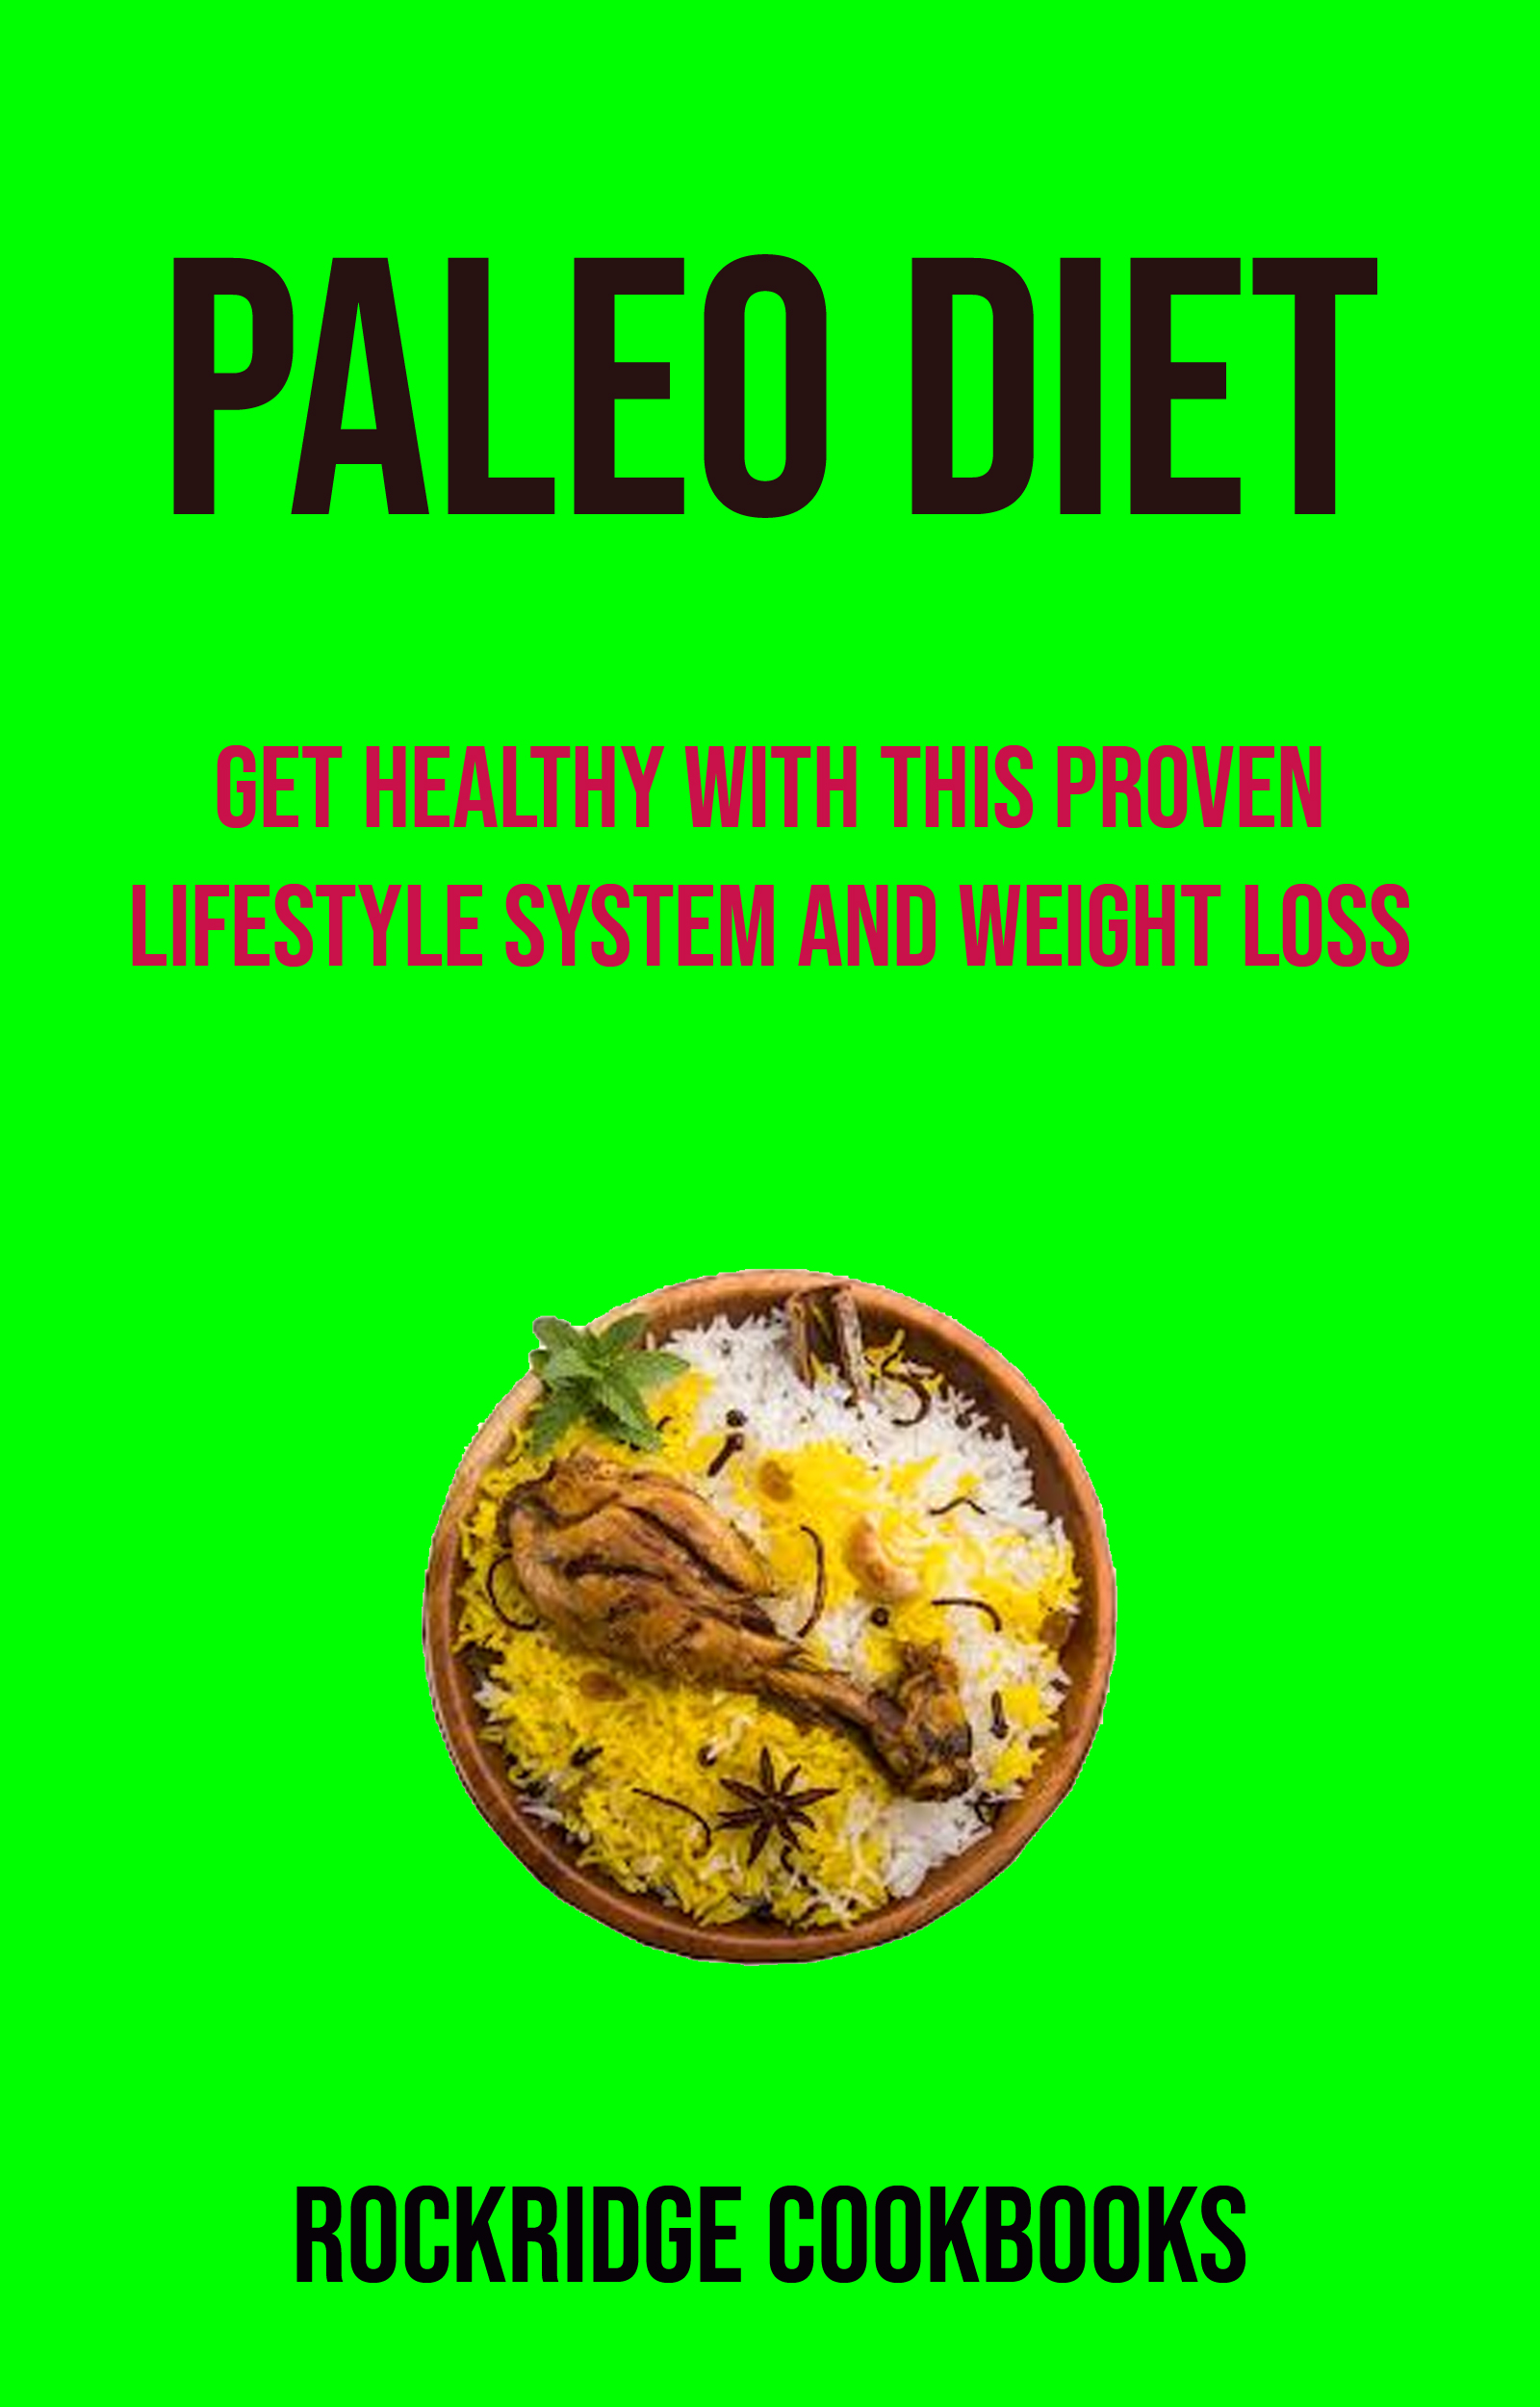 Paleo diet: get healthy with this proven lifestyle system and weight loss